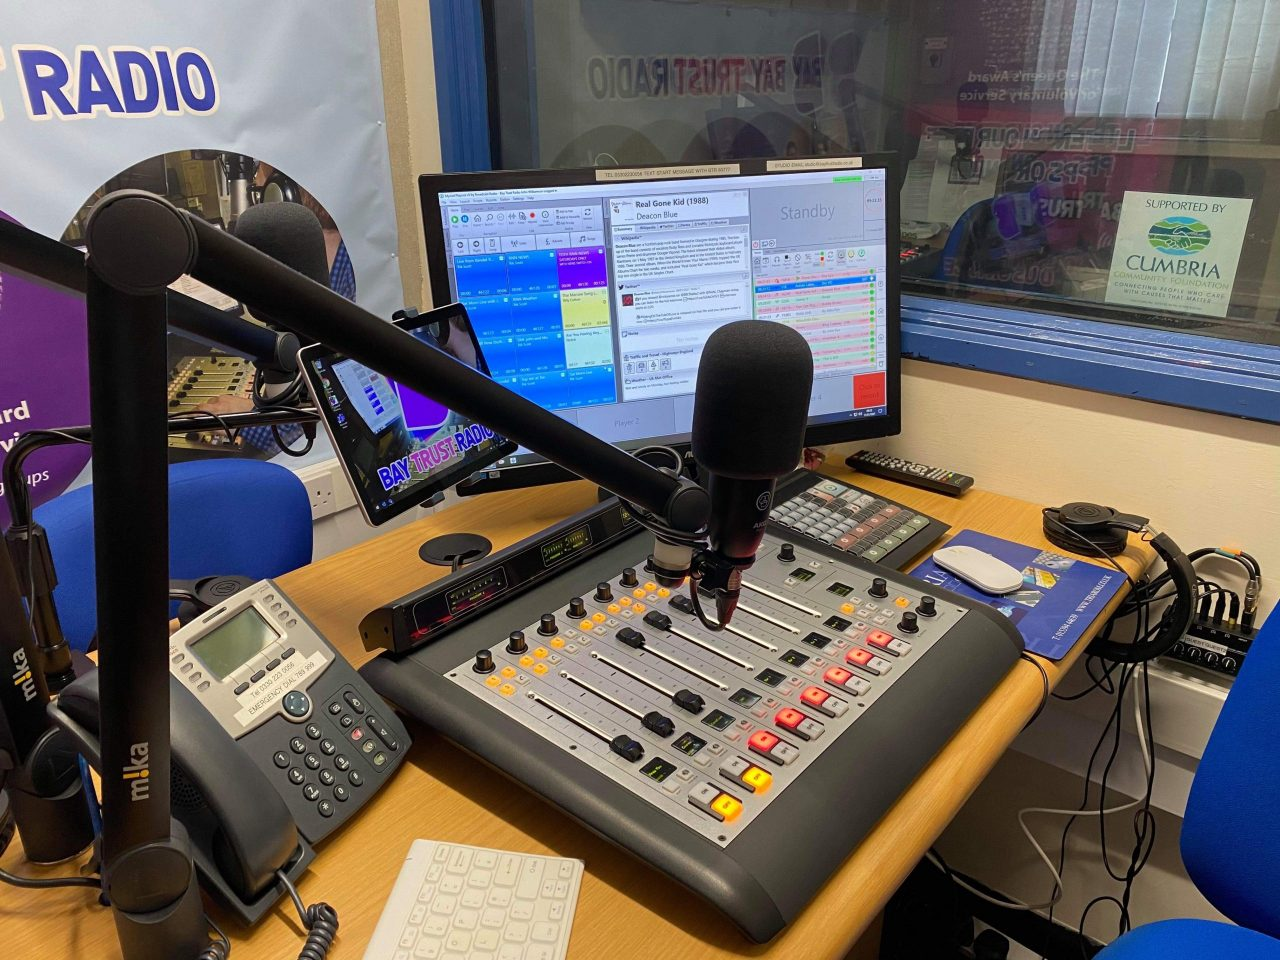 Funding boost keeps charity on air during lockdown